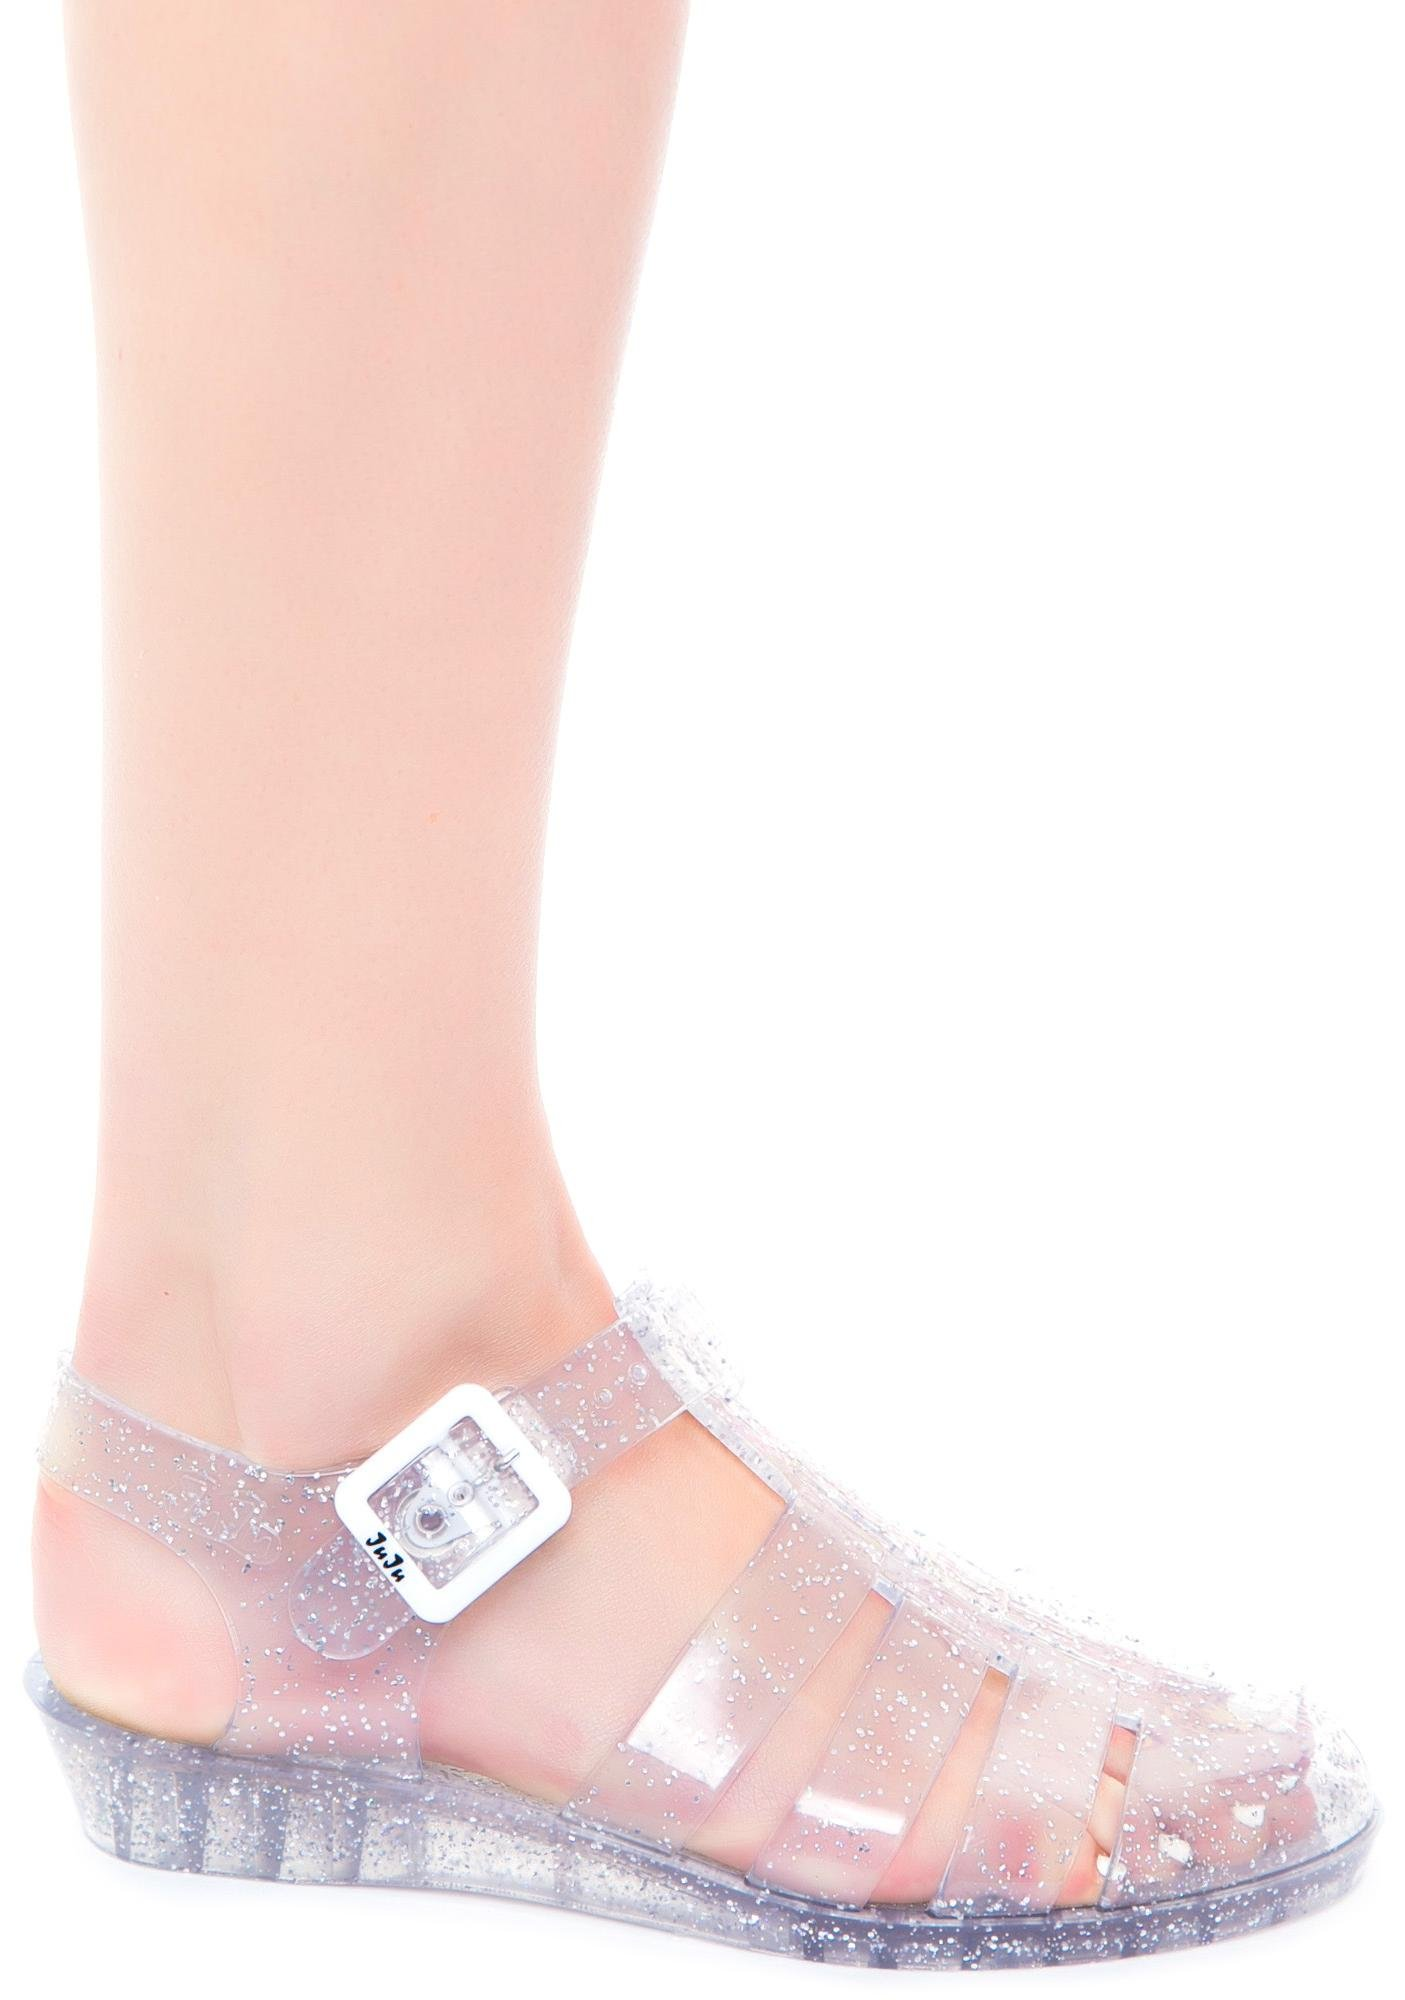 93cd856f1ed6 Juju Shoes Tinkerbelle Jelly Sandal